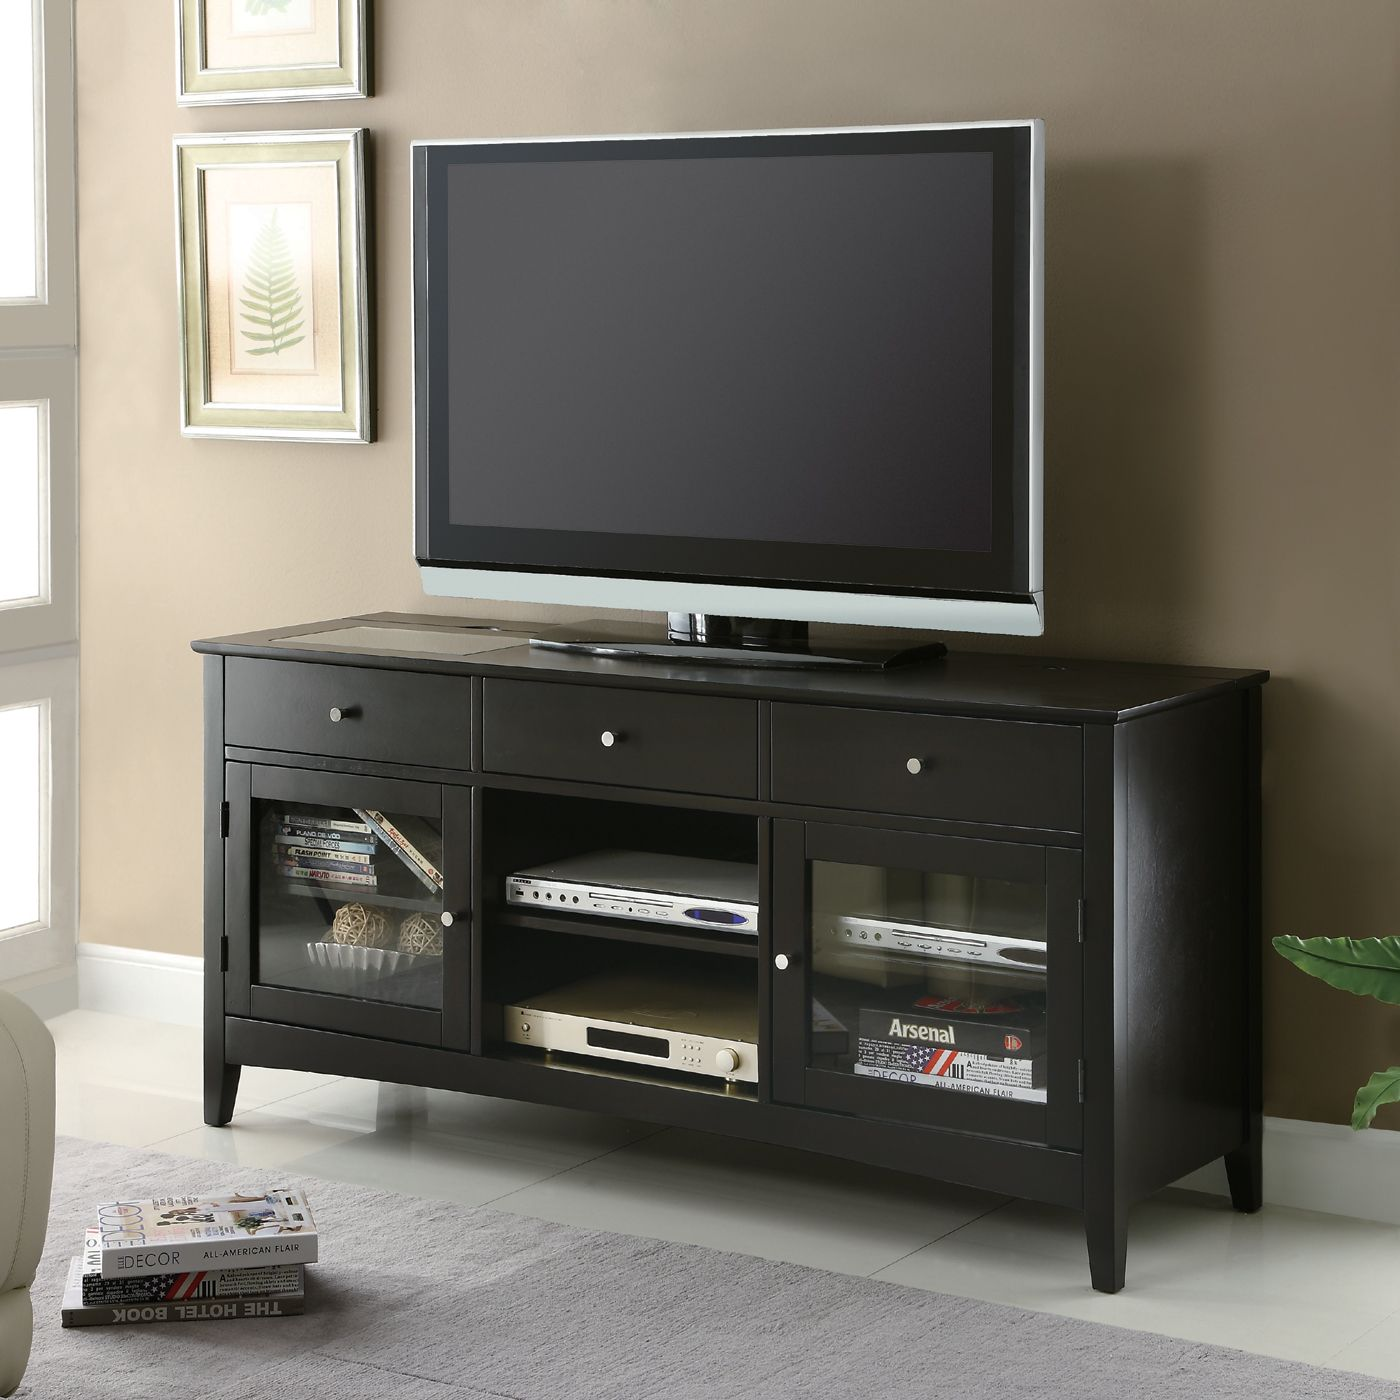 Shop Coaster Fine Furniture 700694 Connect-It TV Stand At